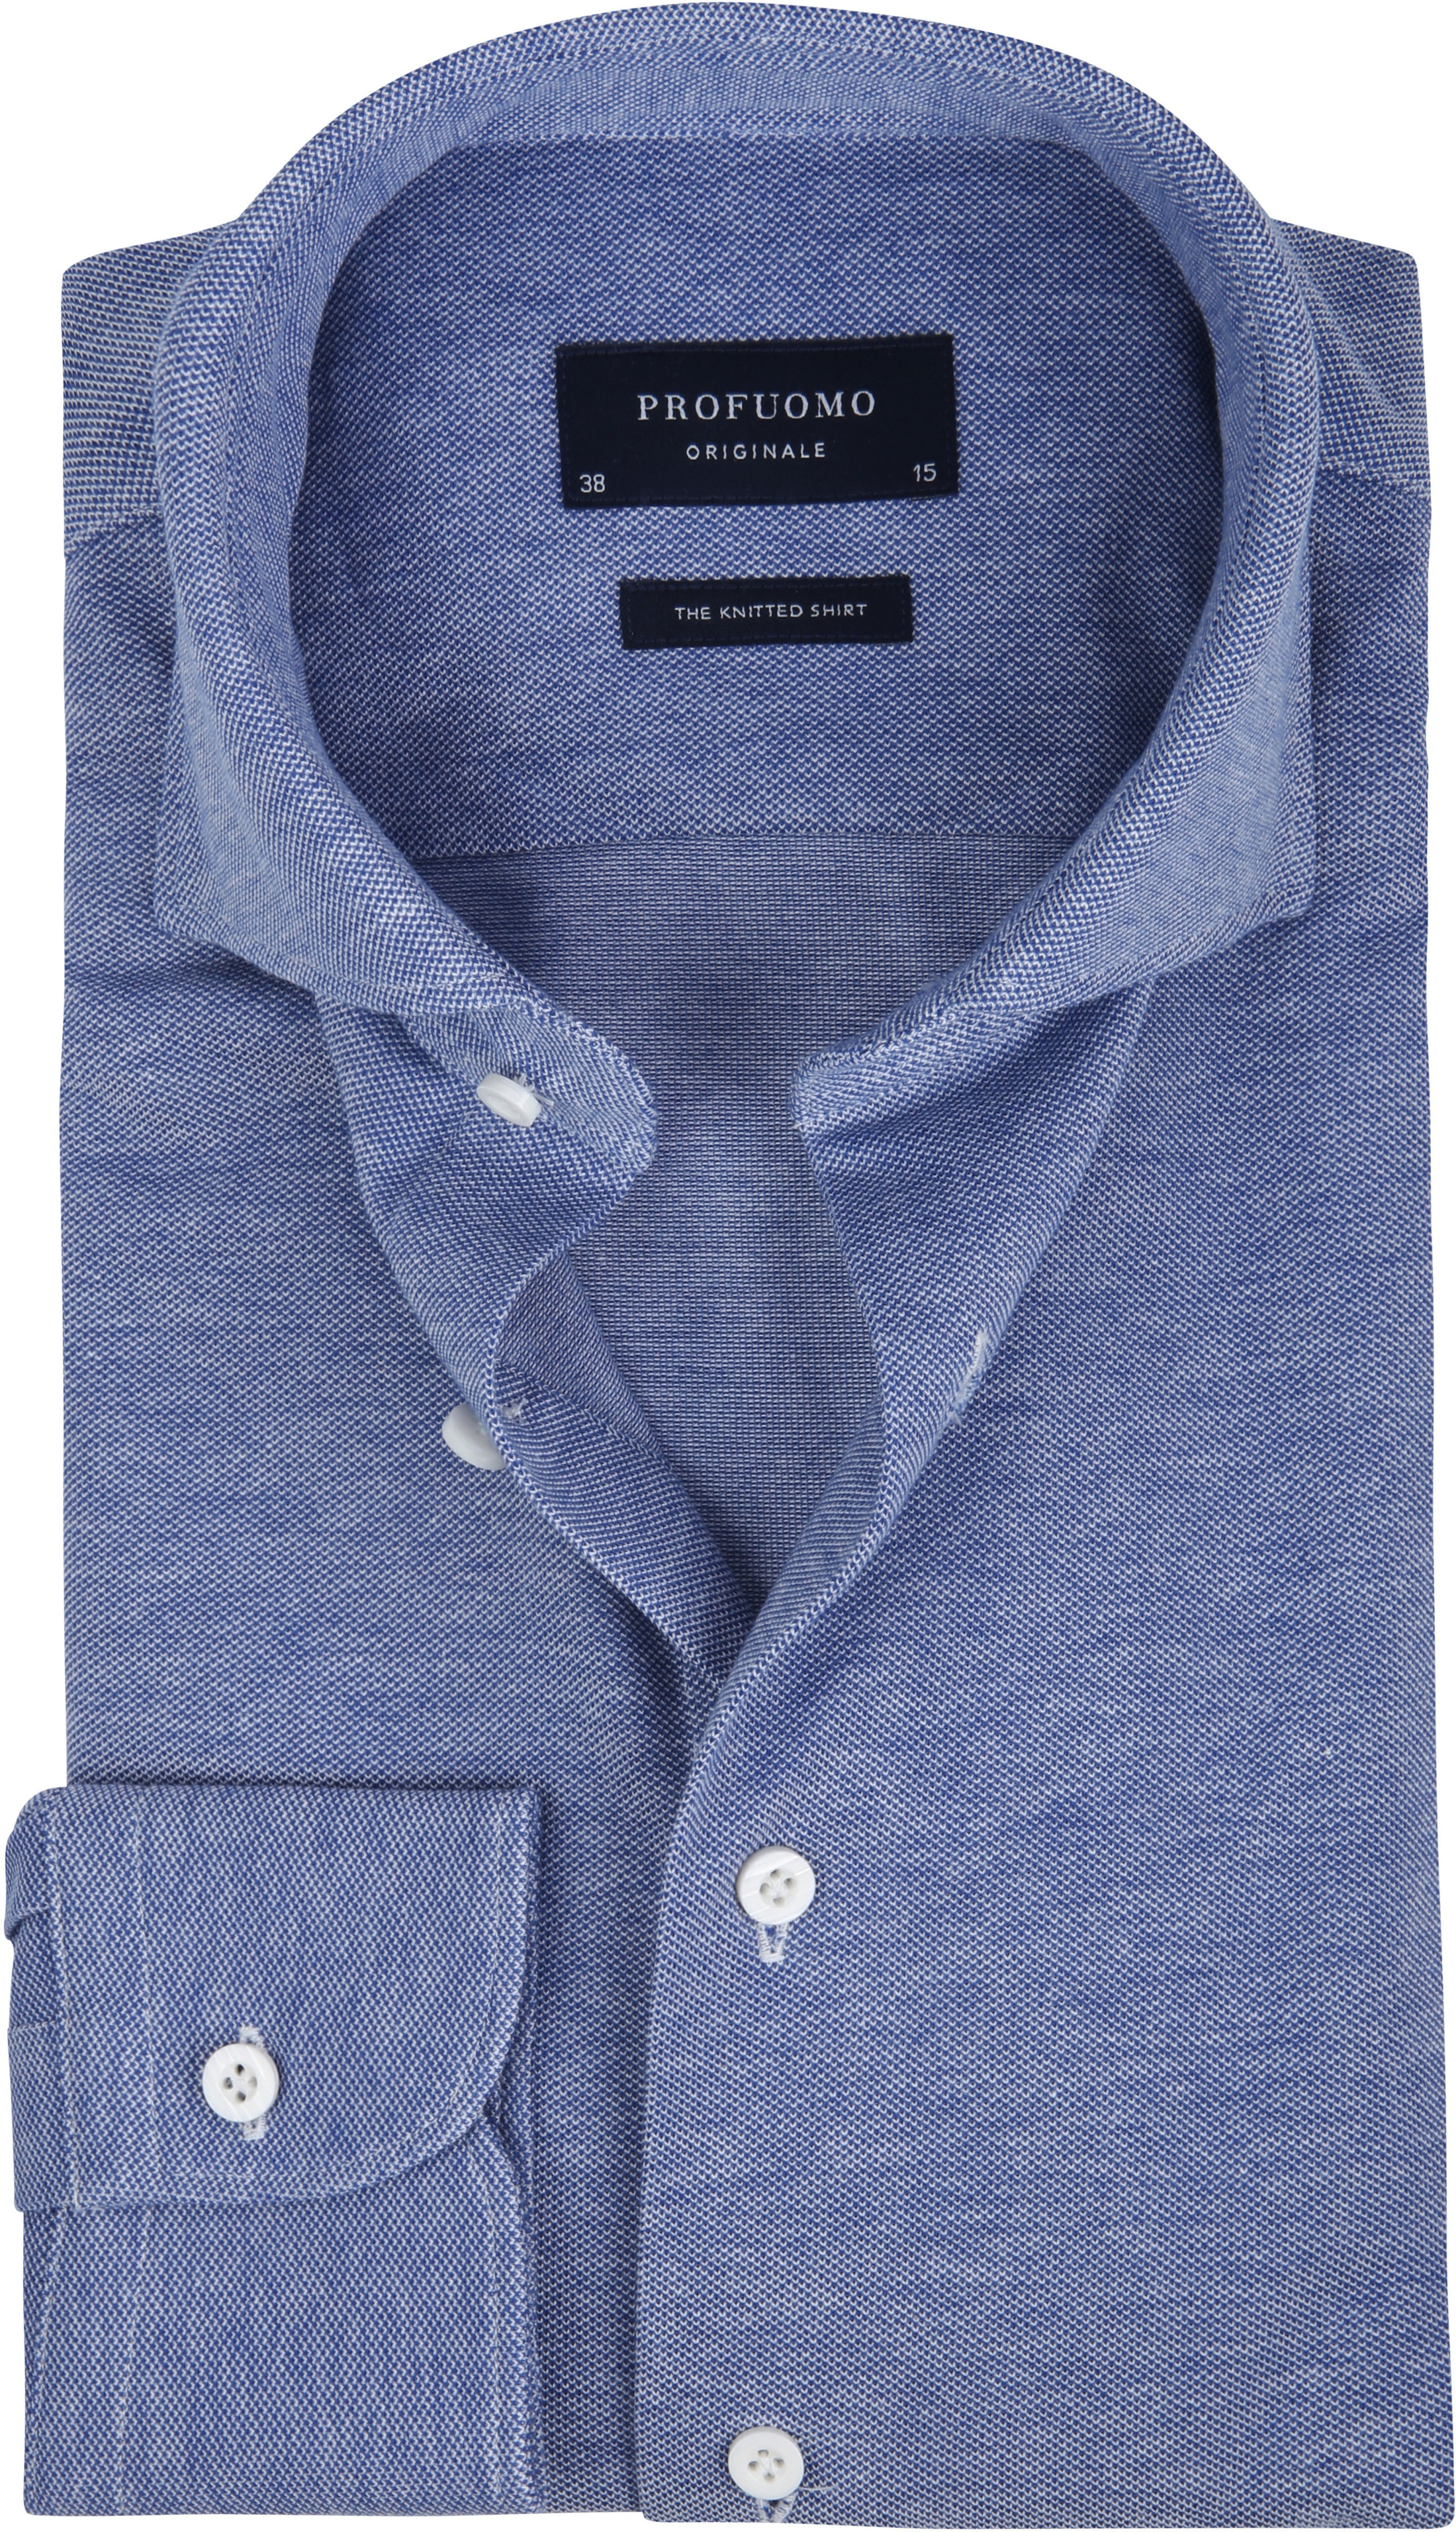 Profuomo Overhemd Knitted Mid Blauw foto 0